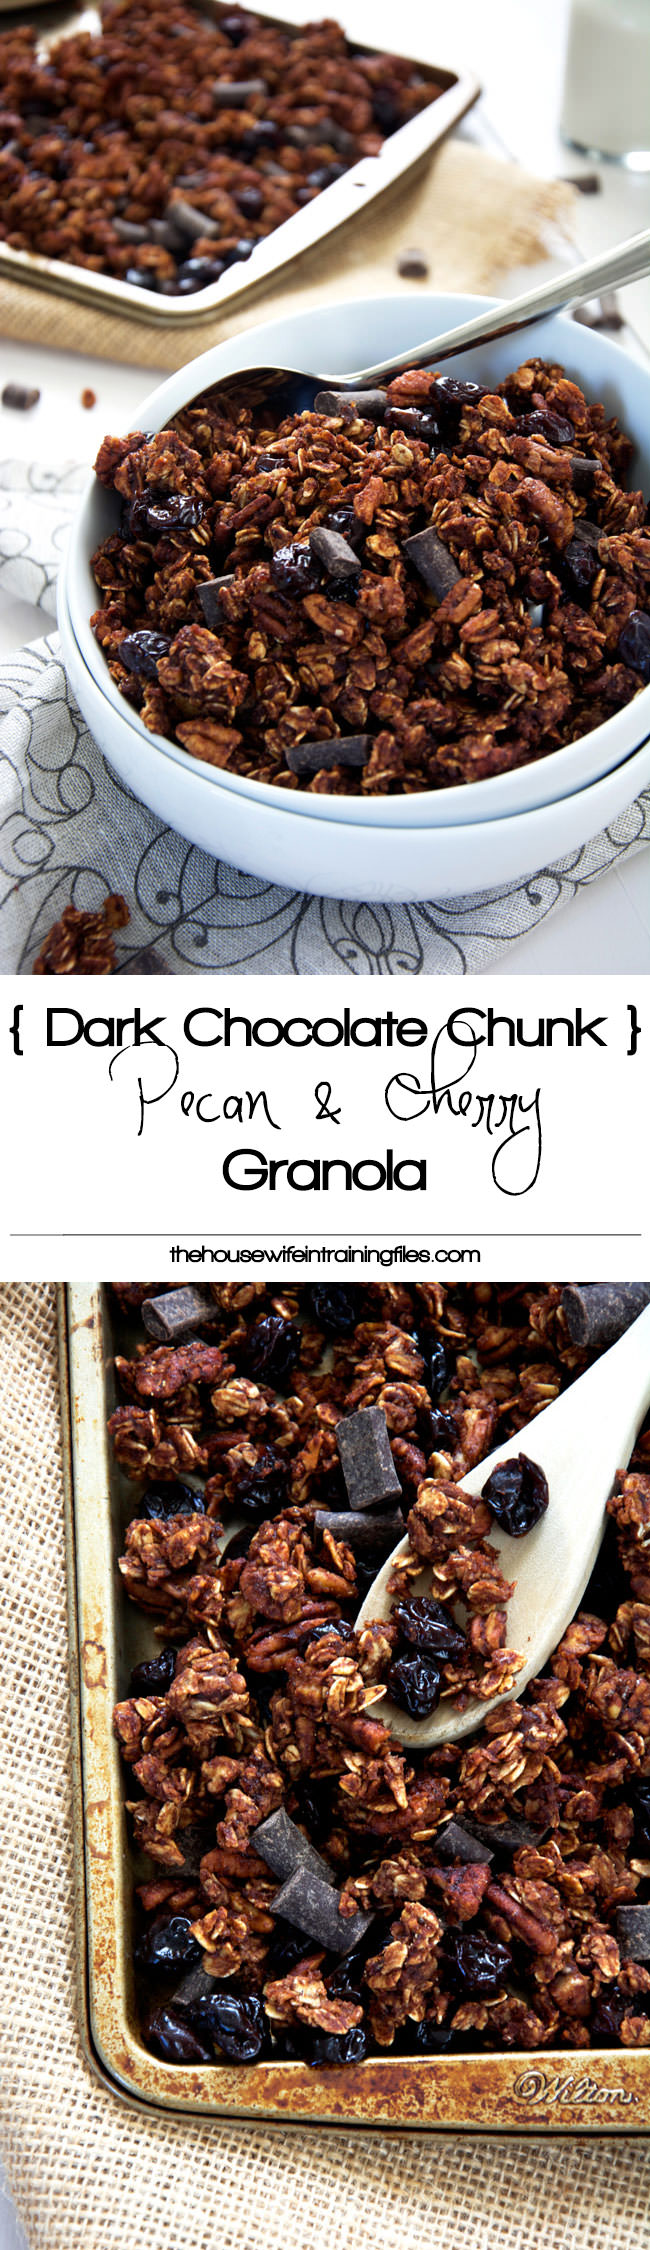 A lighter granola made with unsweetened applesauce and honey! Dark chocolate chunks, cherries and pecans make this skinny granola a decedent treat!  #glutenfree #granola #healthy